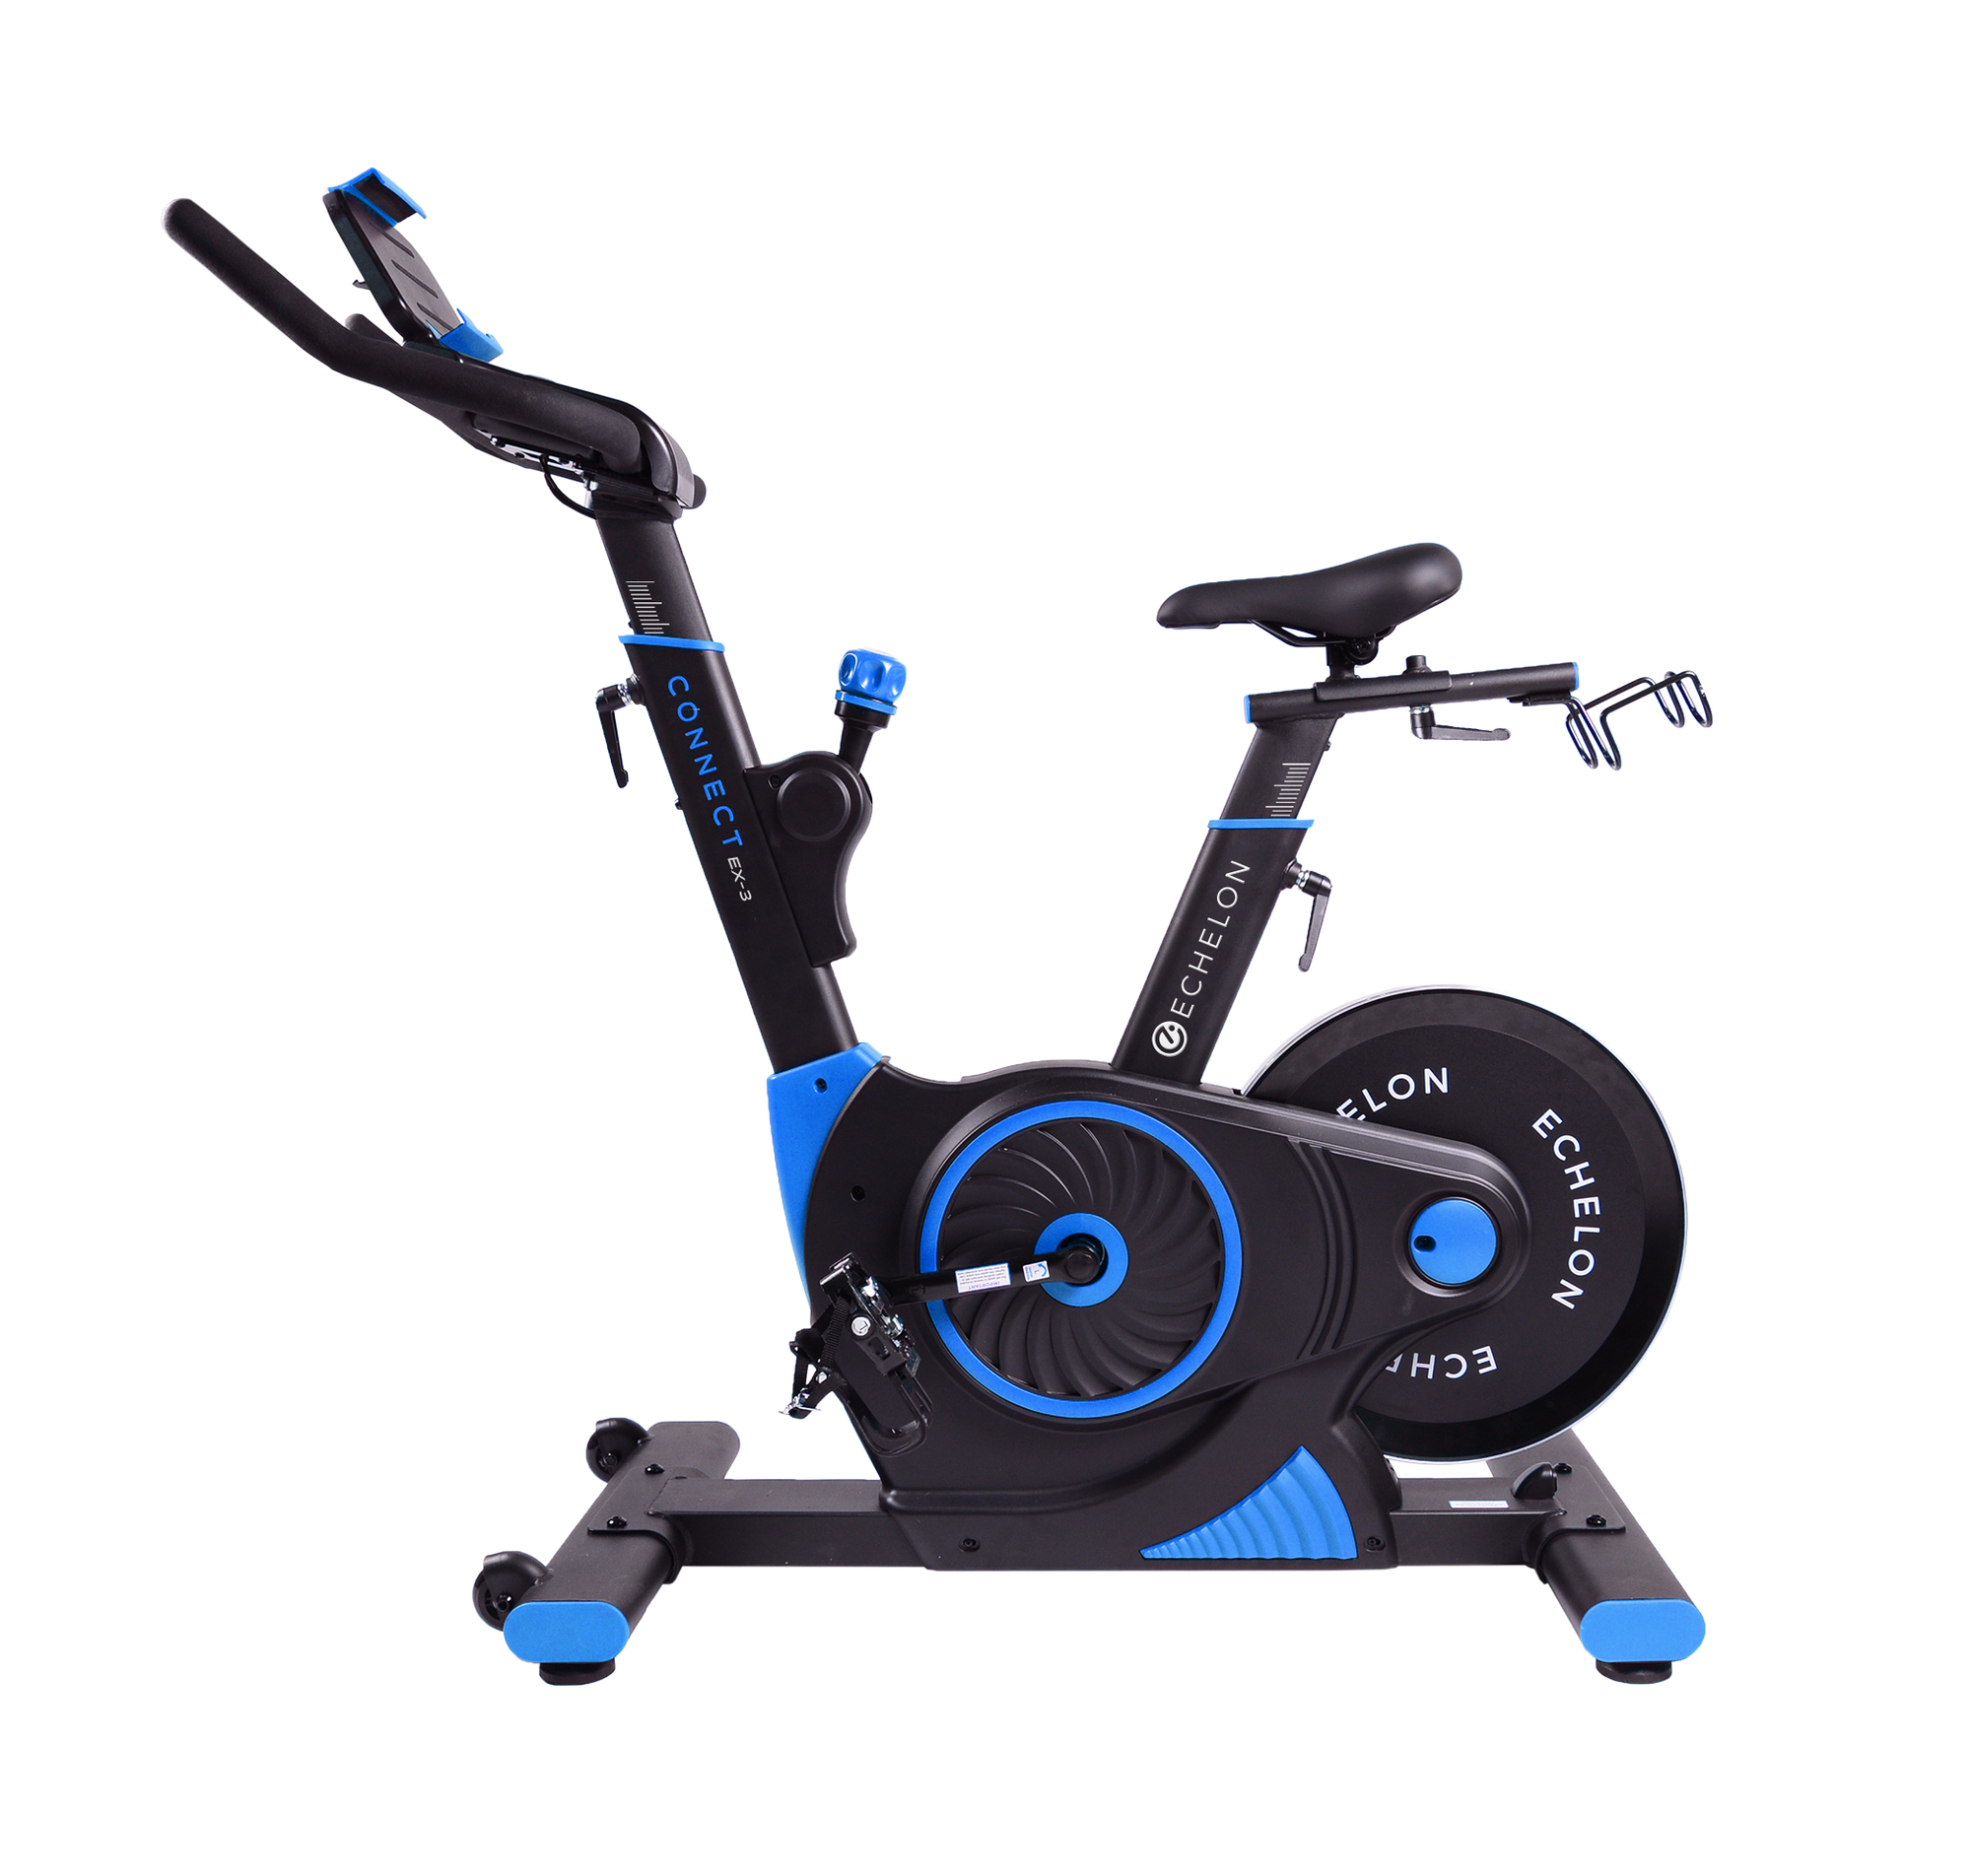 Echelon Smart Connect Bike EX3 - (Olympic Royal Blue) Limited Edition